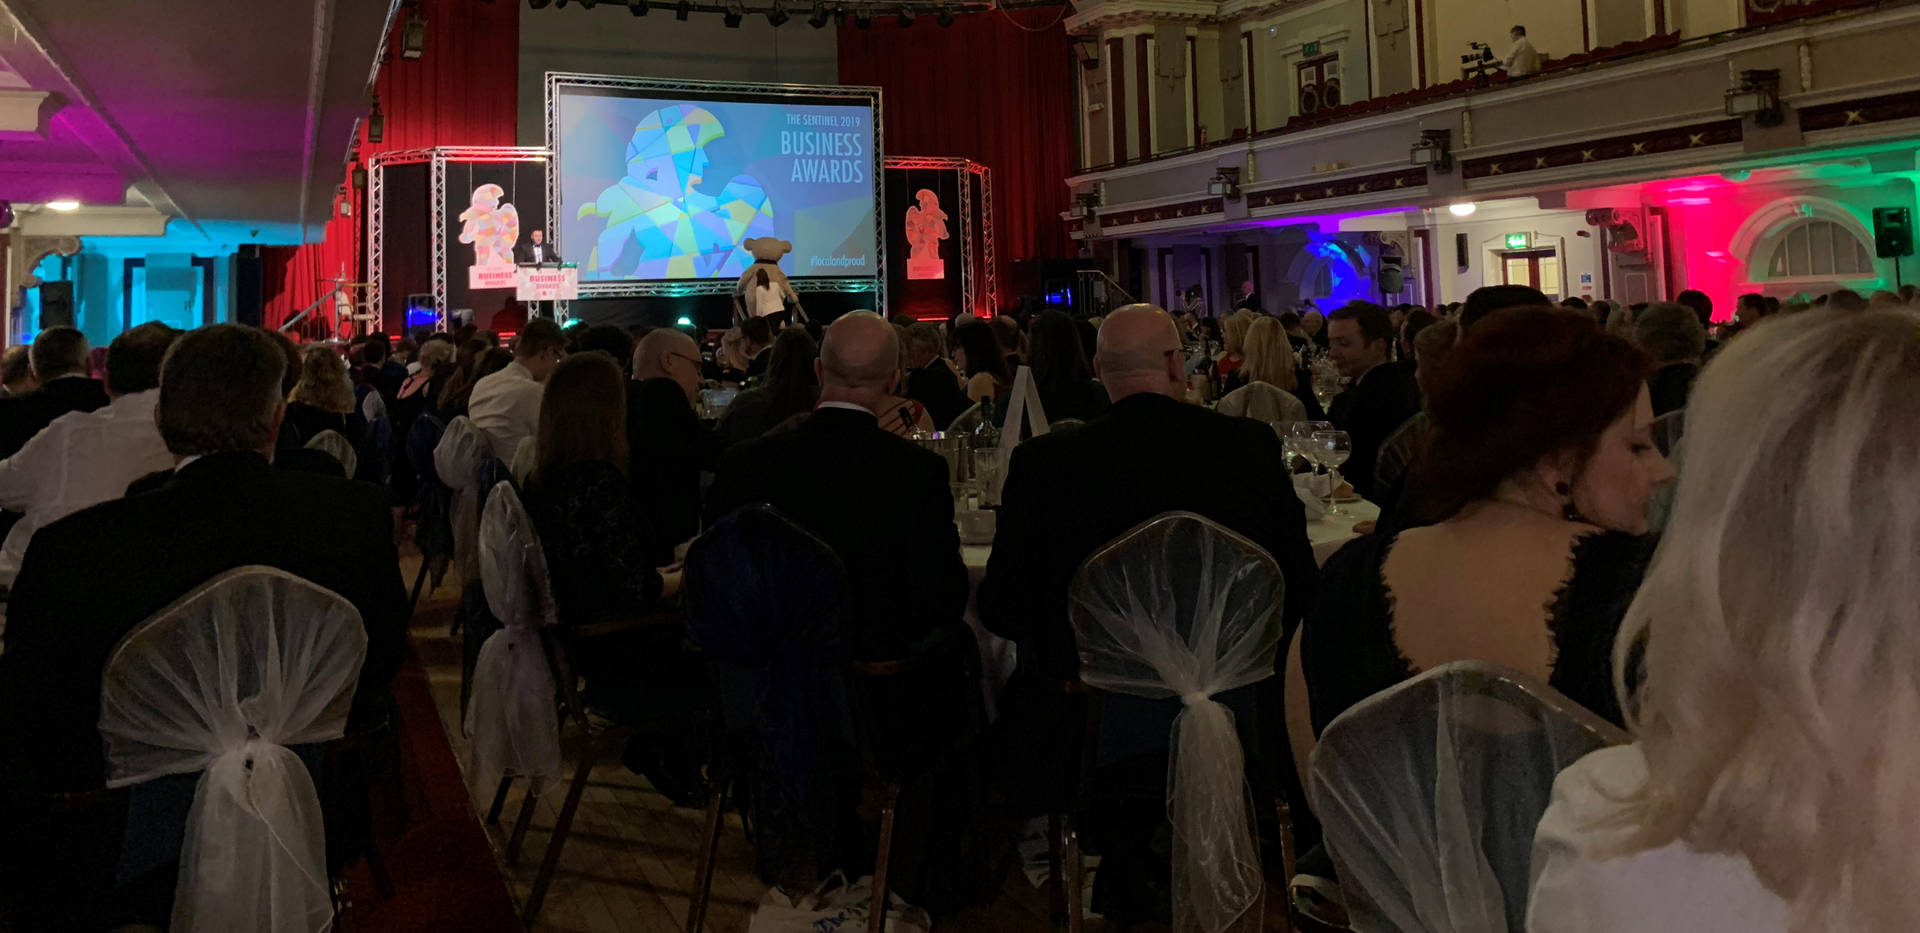 Inside The Sentinel Business Awards, King's Hall, Stoke